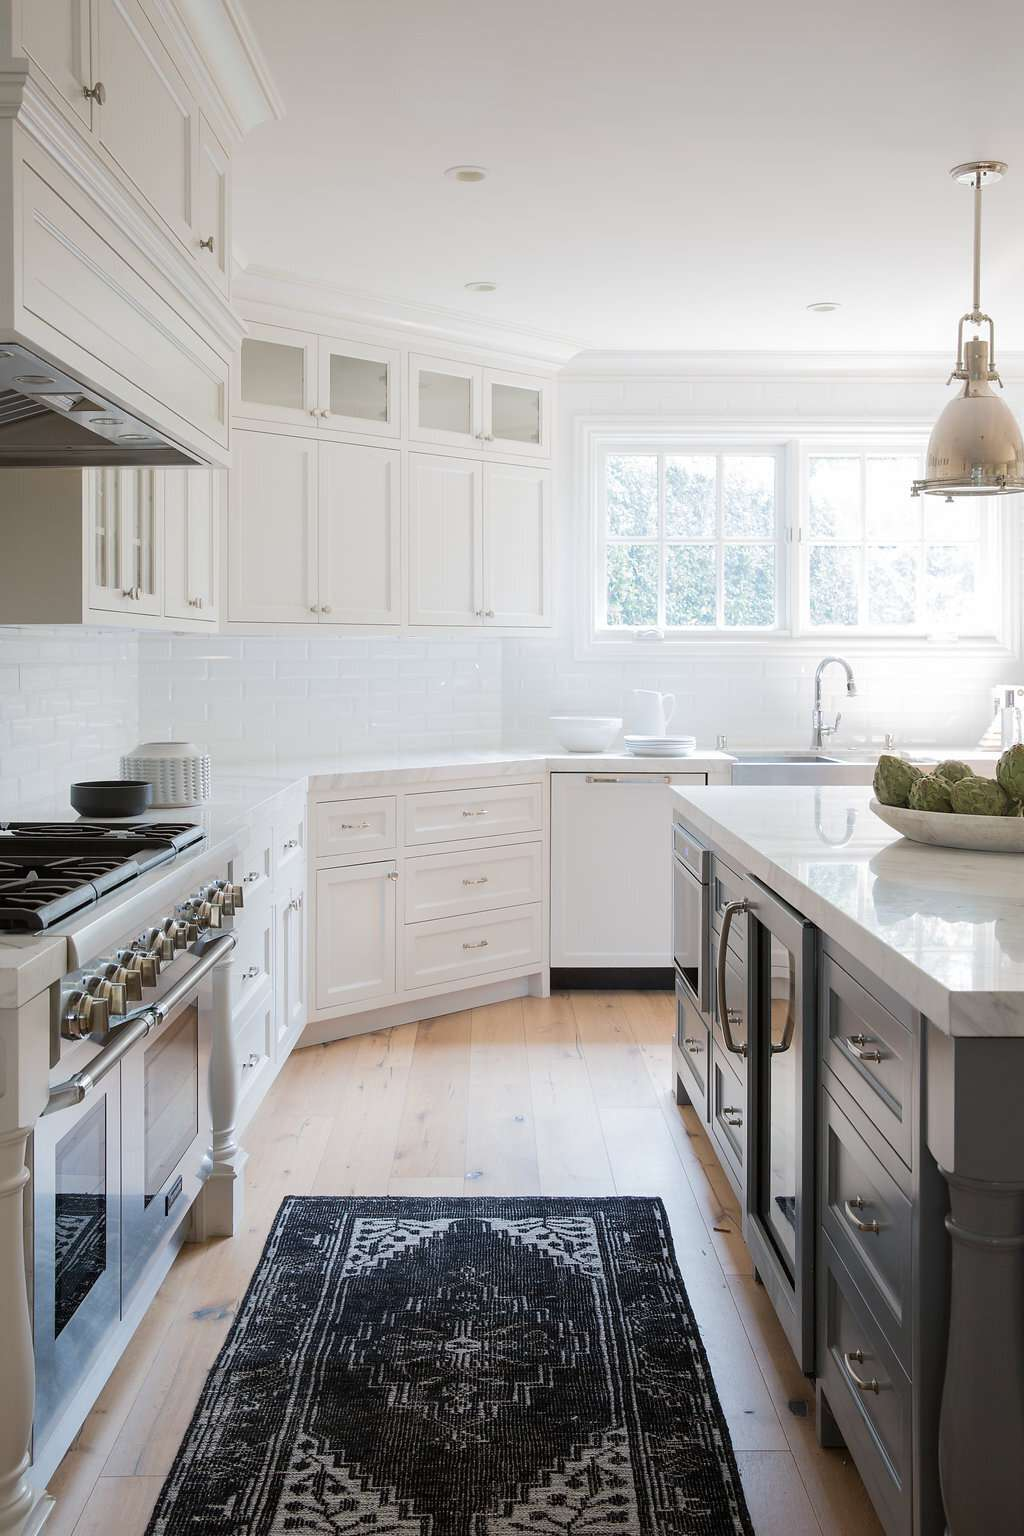 All white kitchen with dark colored, patterned runner